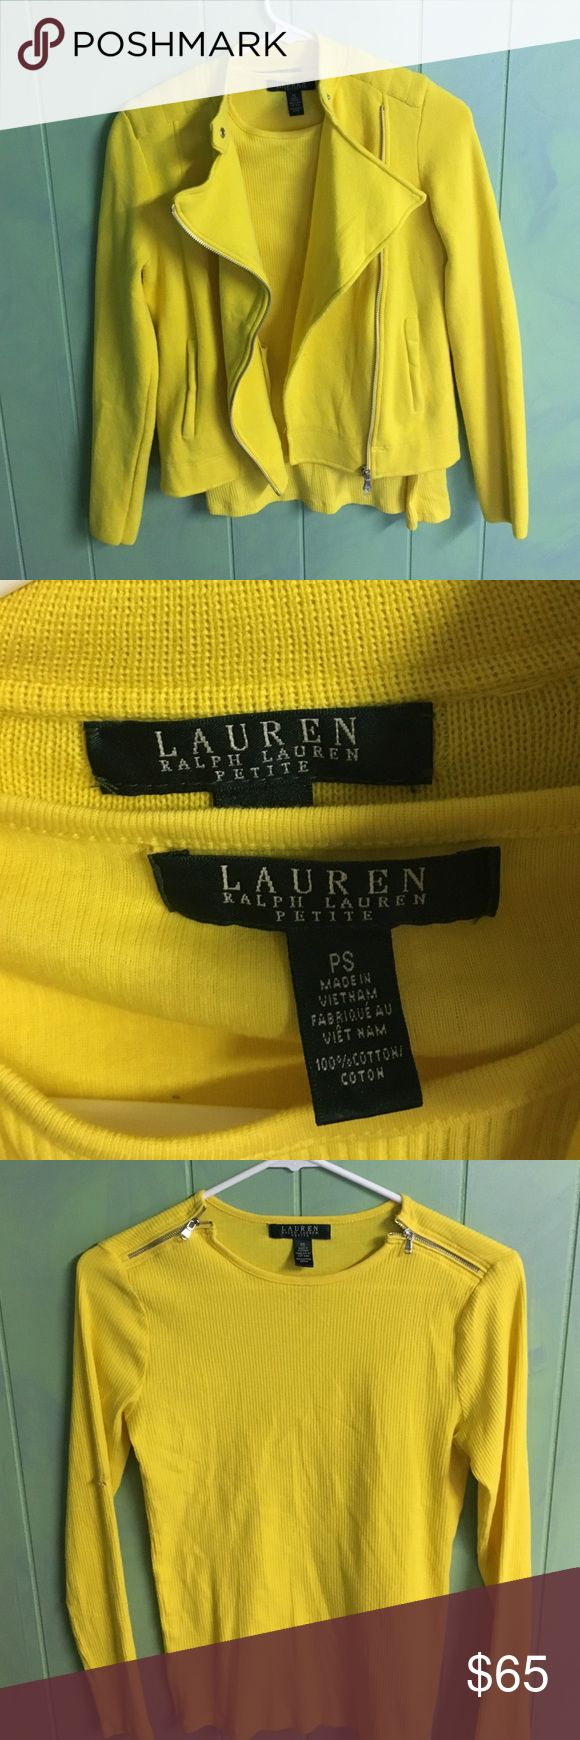 Two piece yellow cotton ensemble by Ralph Lauren. NWOT- 2 piece 100% cotton yellow ensemble featuring an inner vertically ribbed long sleeved undershirt with zippered top on each side. Outer jacket zippers in the front and can button at the top to keep out a chilly breeze. Beautiful bright yellow in perfect condition. Ralph Lauren Jackets & Coats Utility Jackets